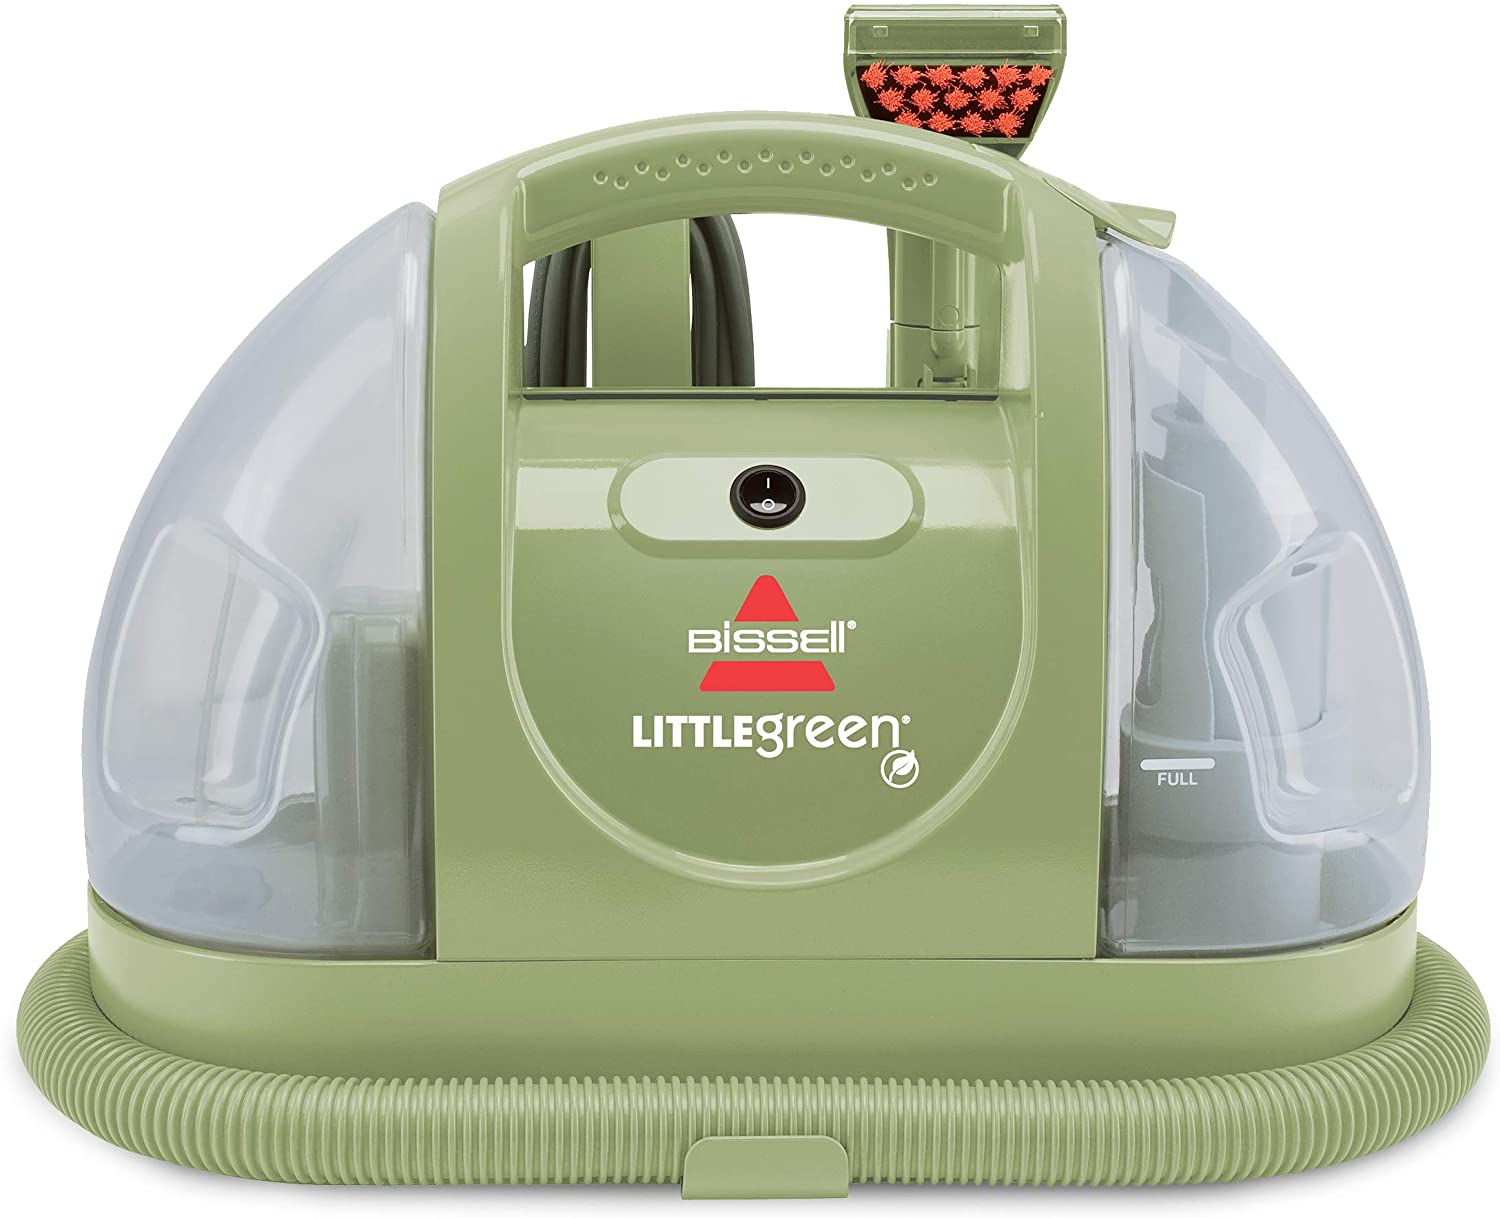 Bissel Little Green machine Product Image